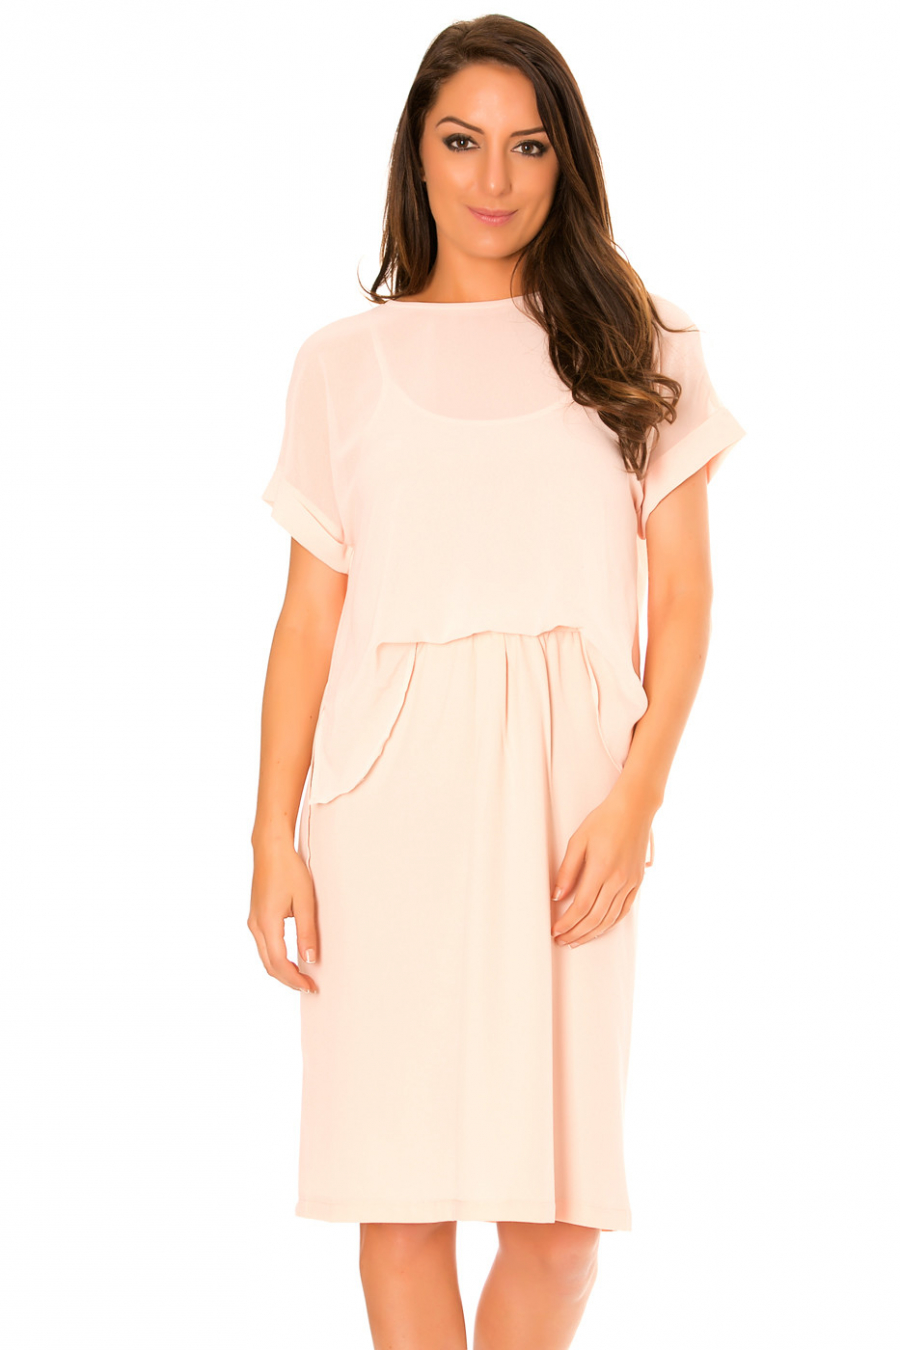 Pink sheer dress, 2-piece skirt and top style. F5562